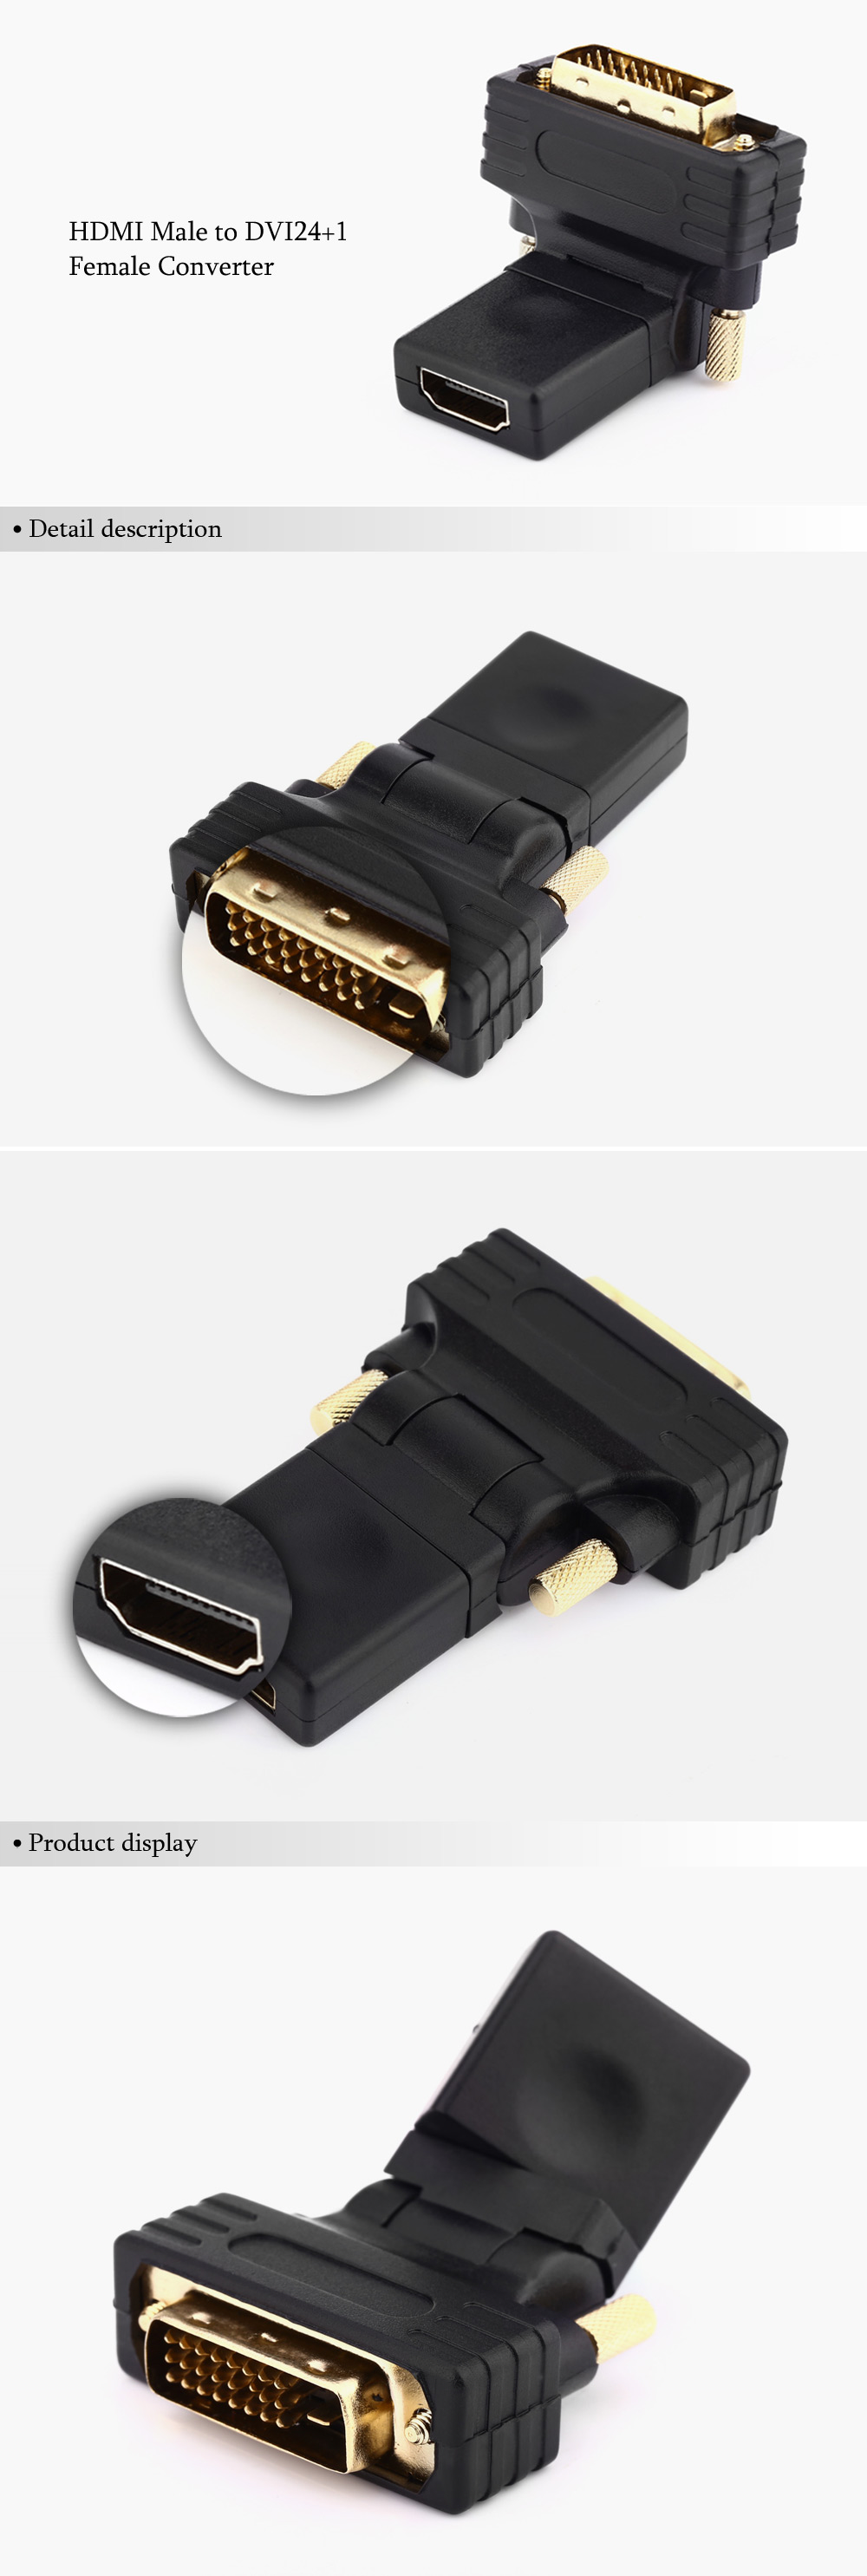 360 Degree Rotation HDMI Male to DVI24+1 Female Converter for PC / DVD Player